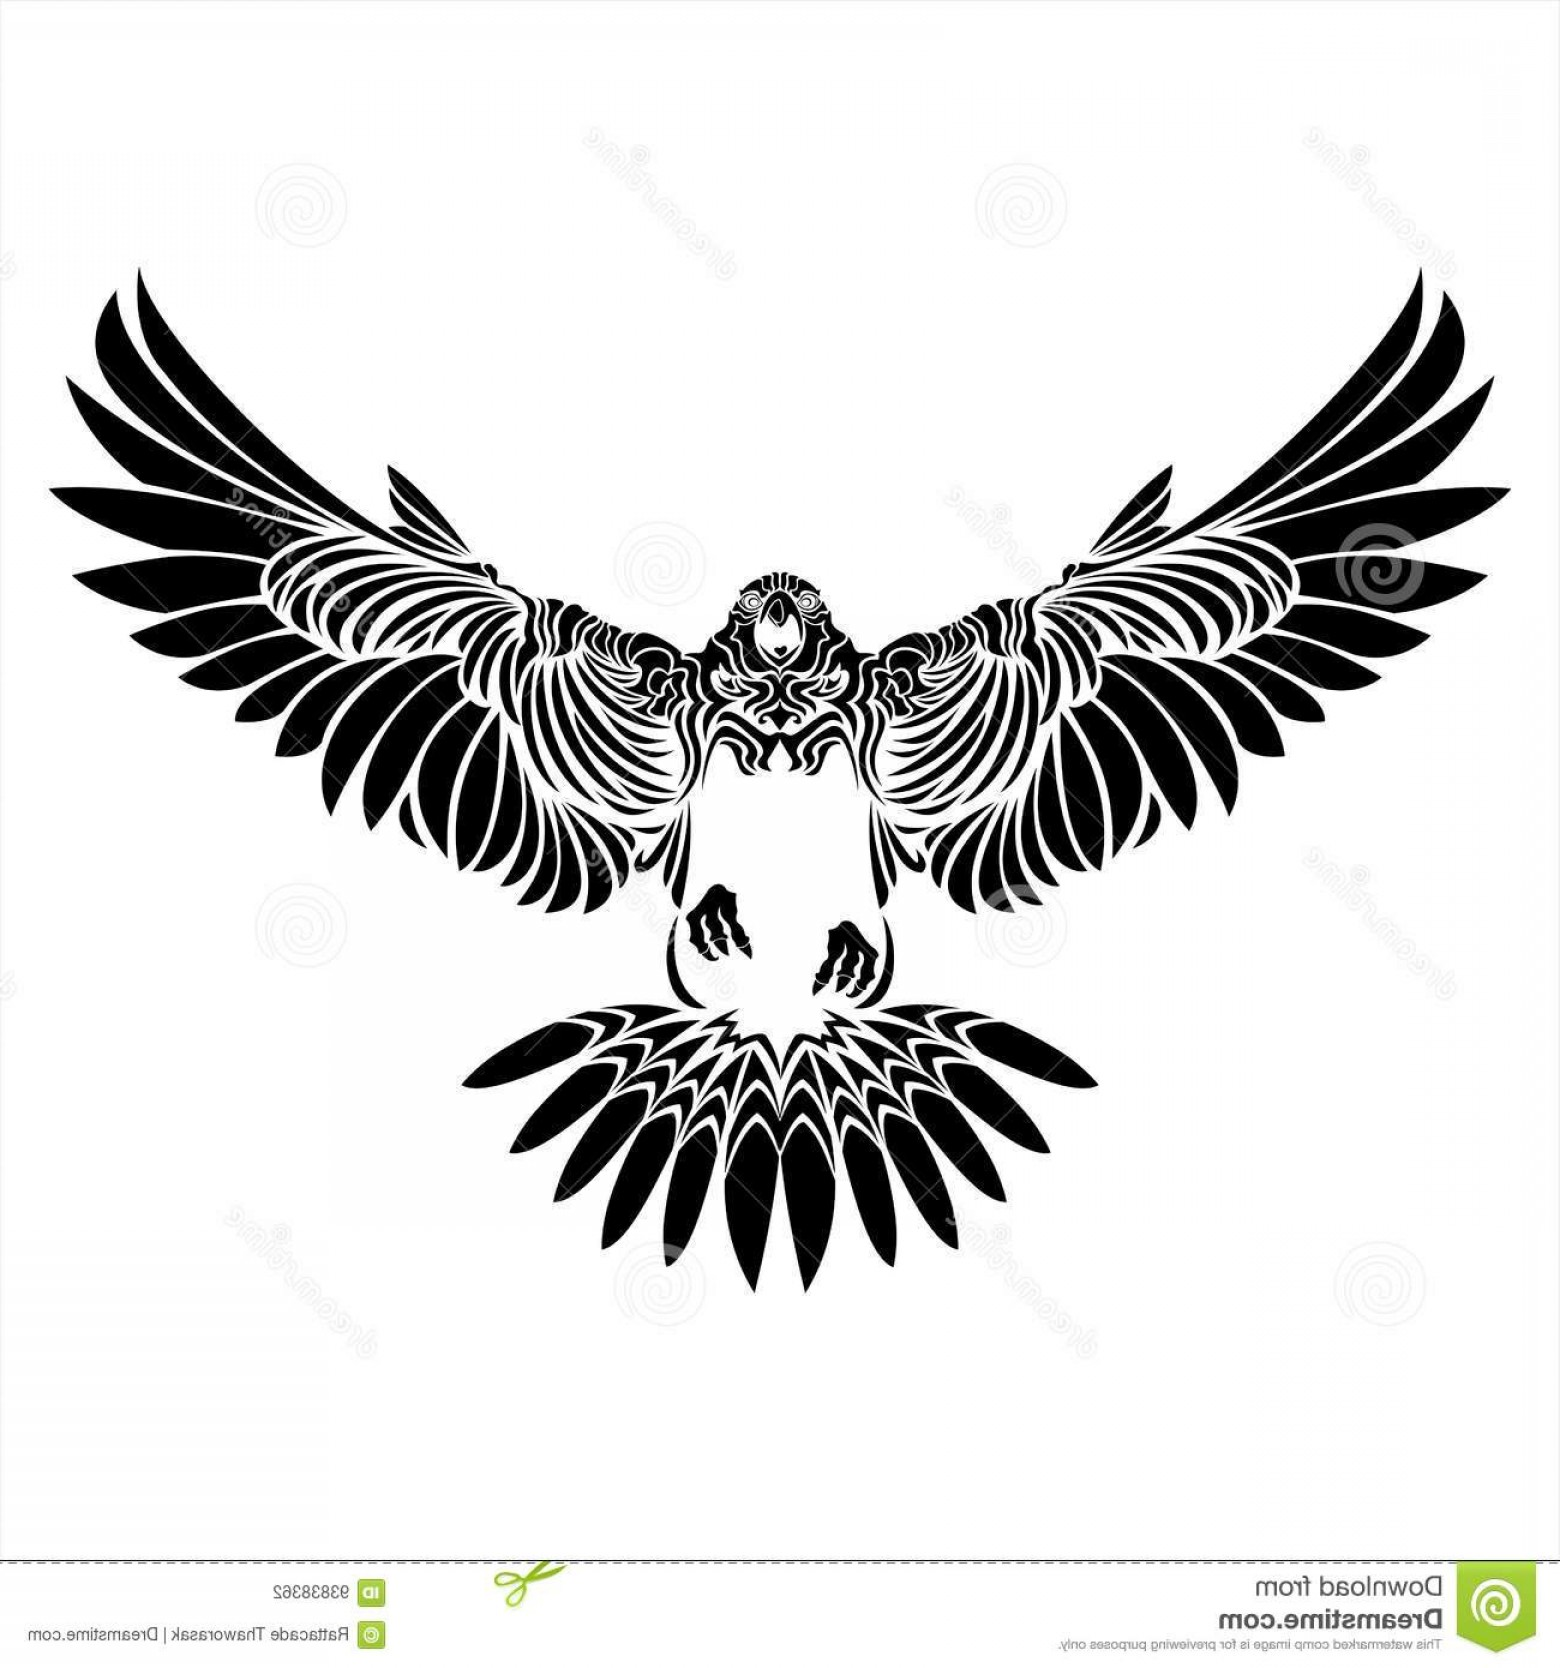 Falcon Silhouette Vector: Stock Illustration Falcon Silhouette Art Style Tattoo Vector Bird Image